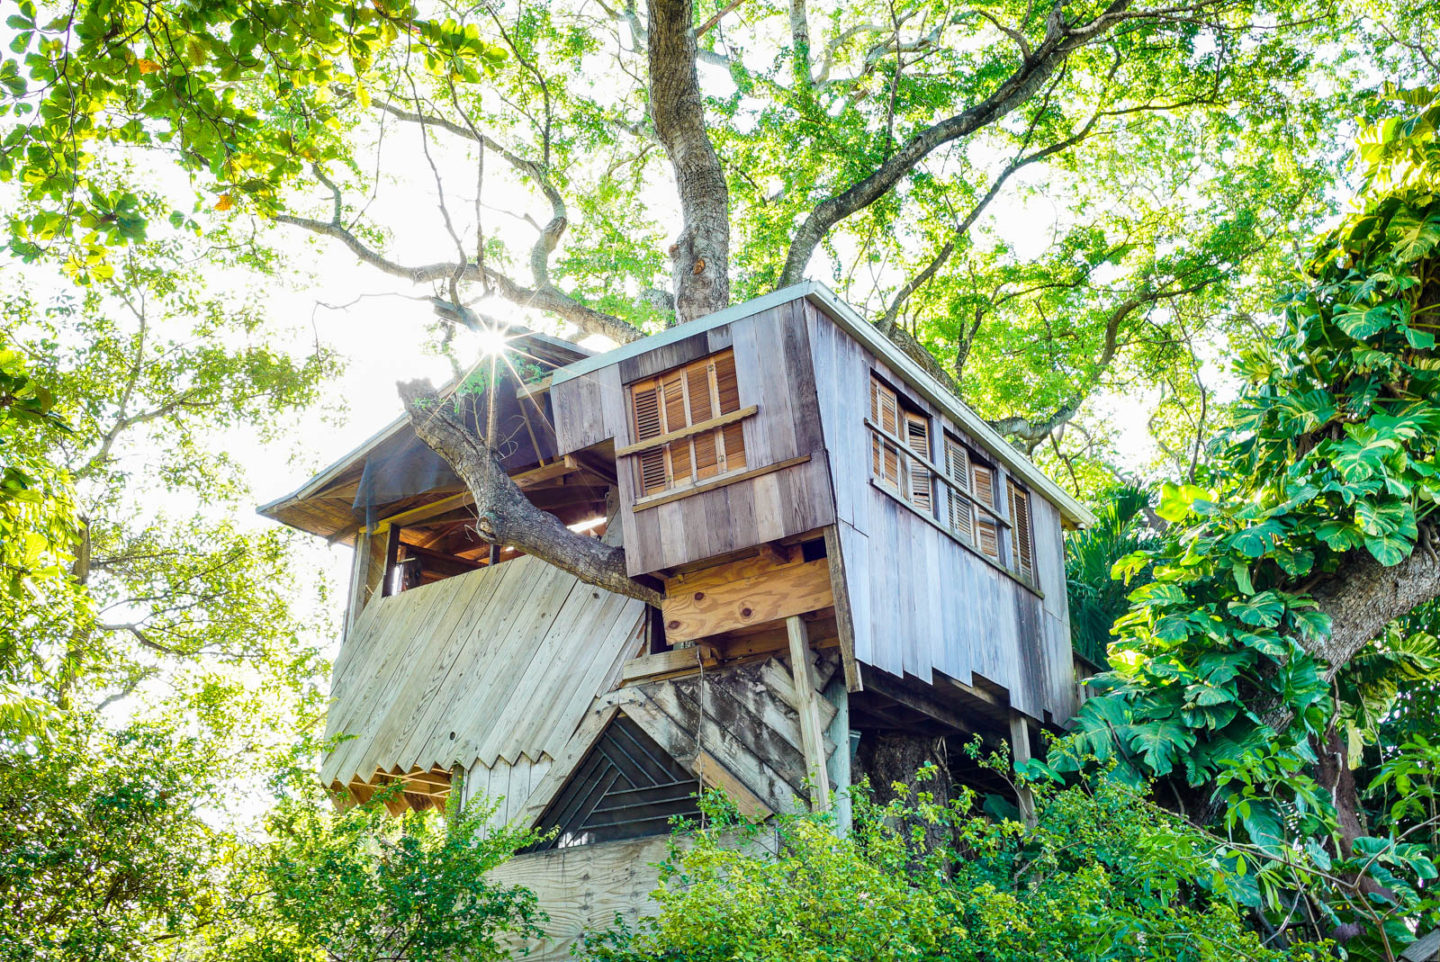 Miami, FL: Tree House Accommodations